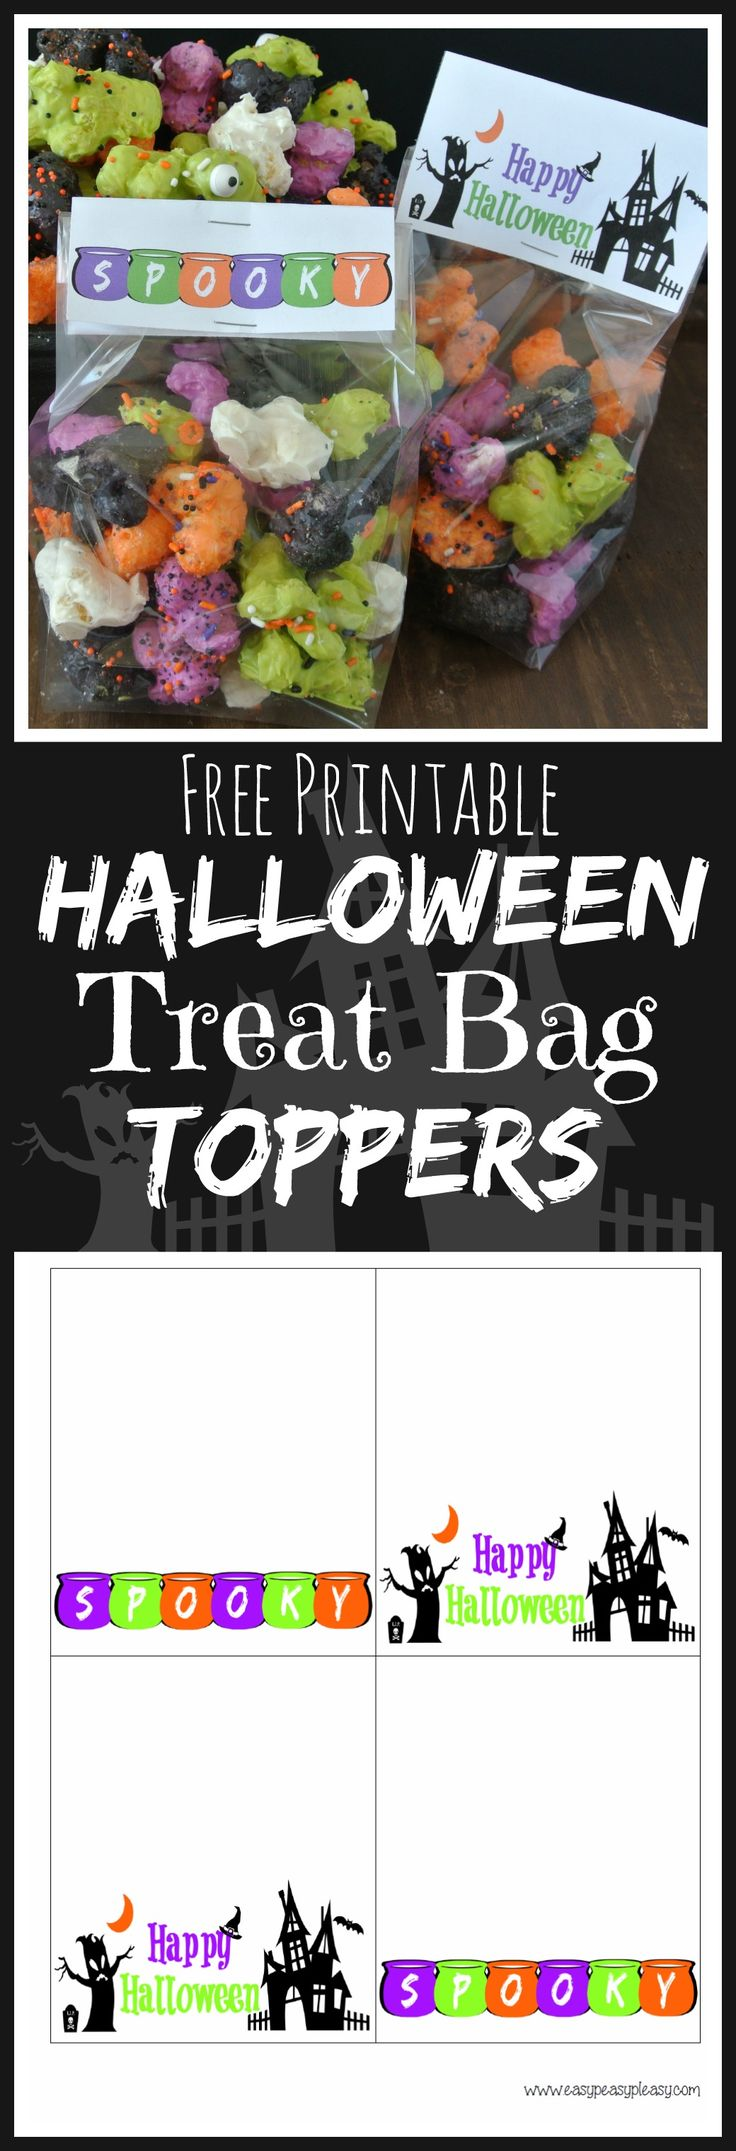 Free Printable Treat Bag Toppers are the perfect addition to those candy goodie bags this Halloween!